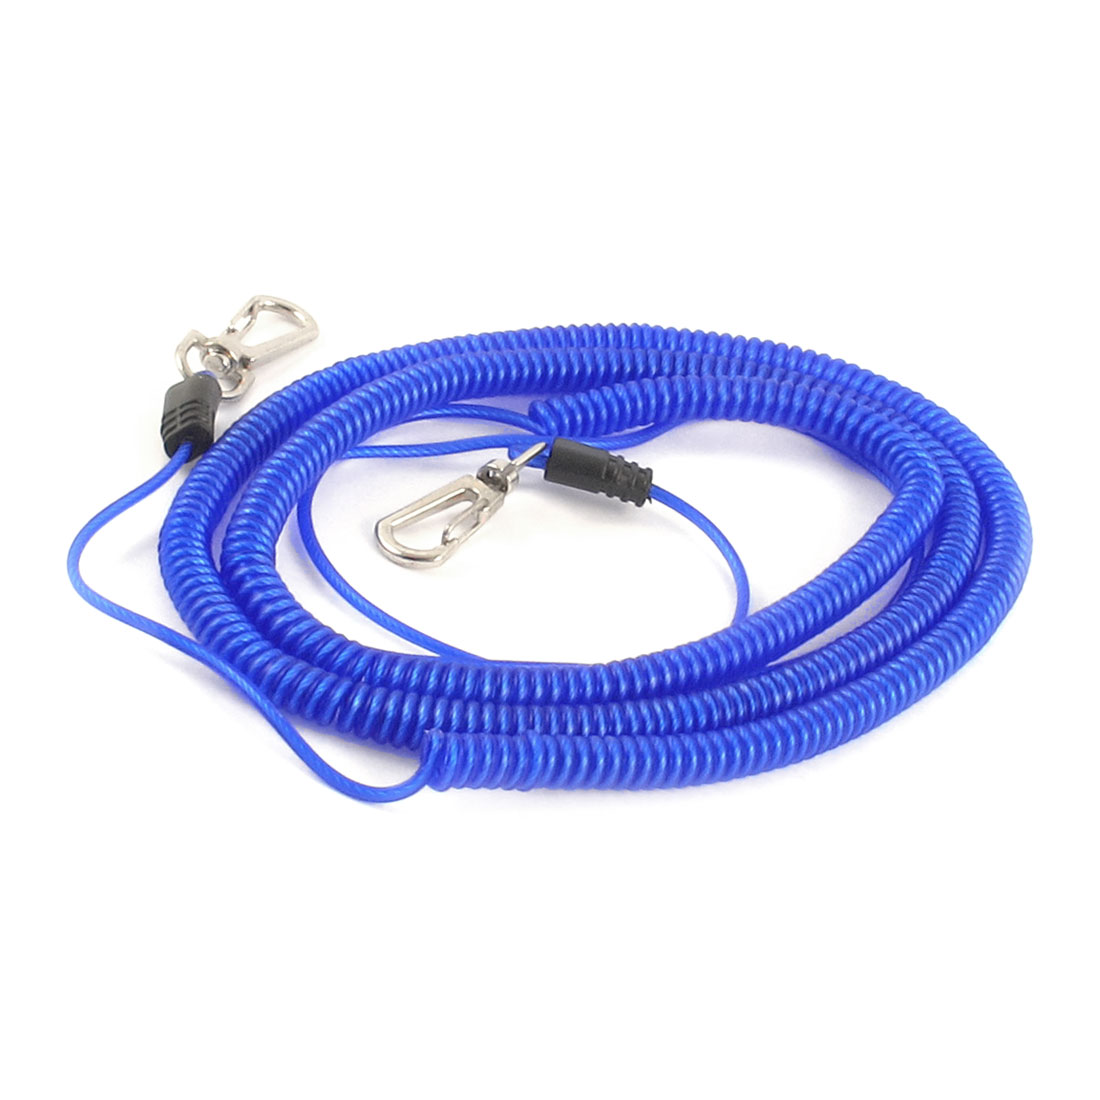 Fishing Rod Safety Lobster Clasp Stretchy Coiled Lanyard Rope Cord Blue 10M 33Ft